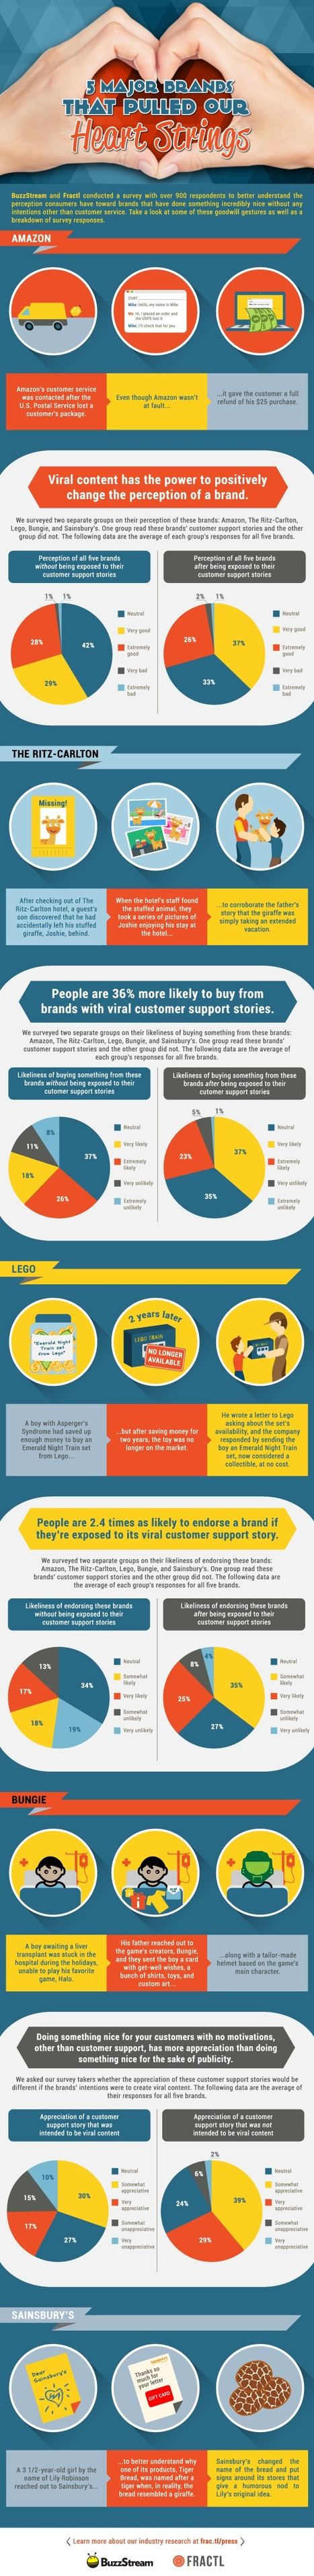 Brands Can Build Trust With Stories of Good Will #Infographic | MarketingHits | Scoop.it